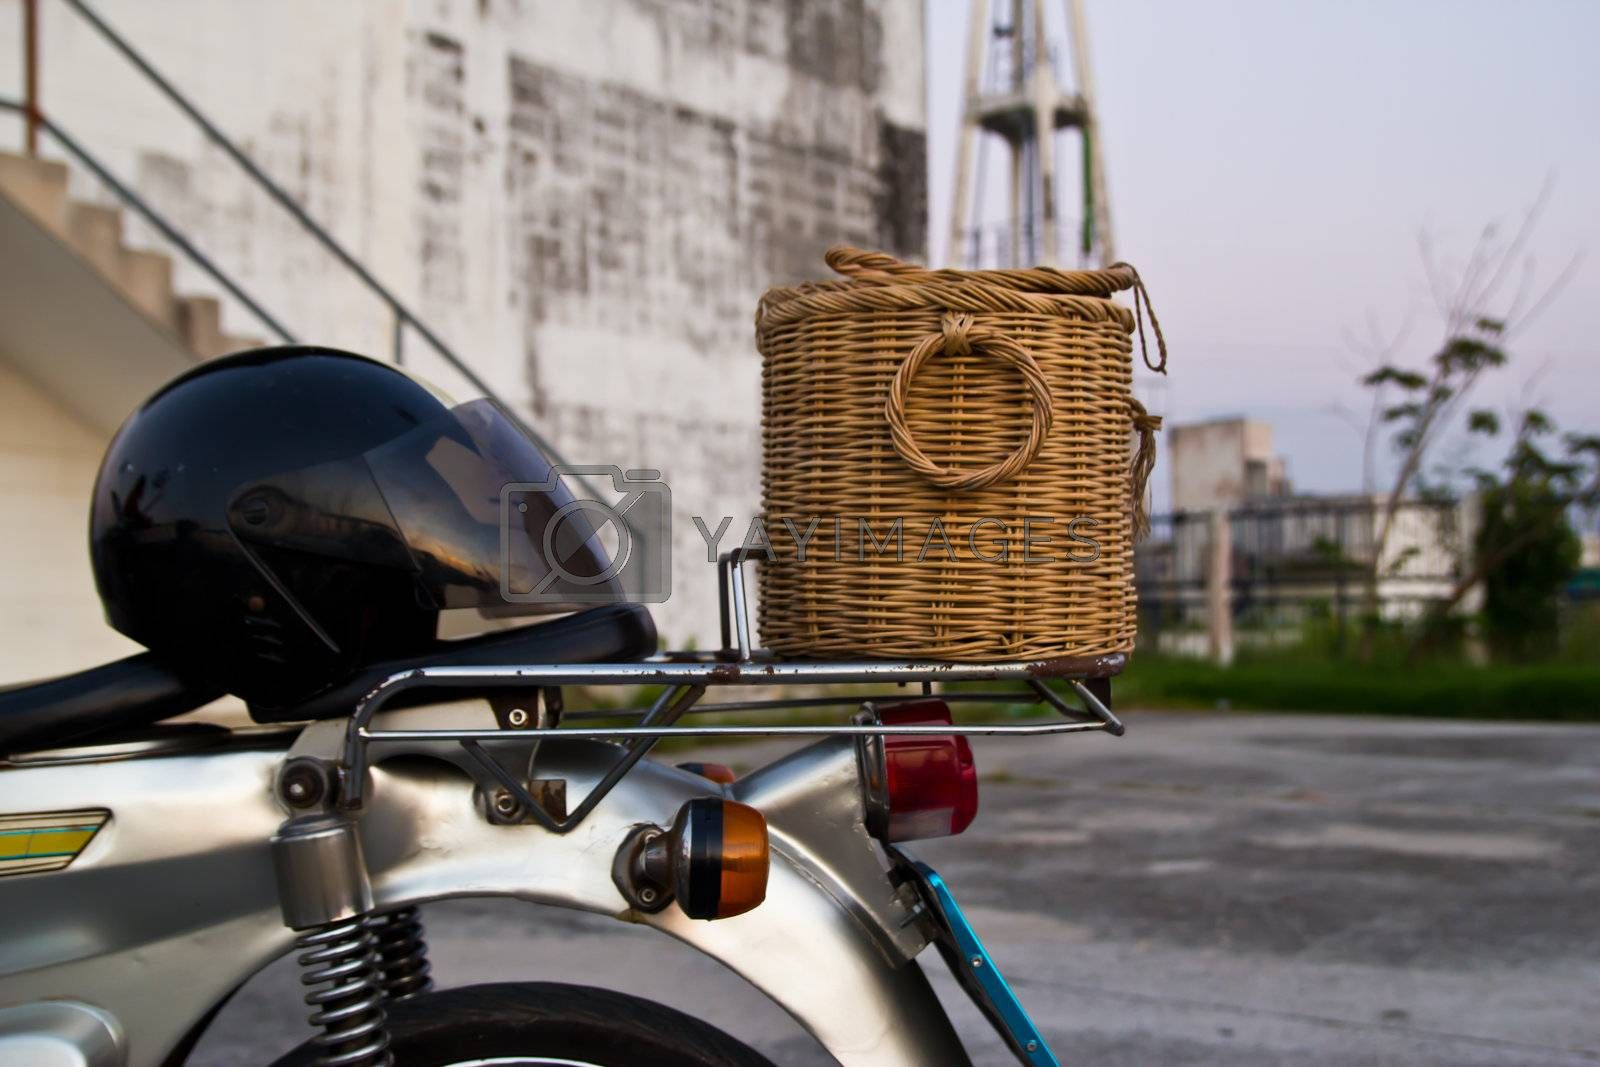 old motorcycle